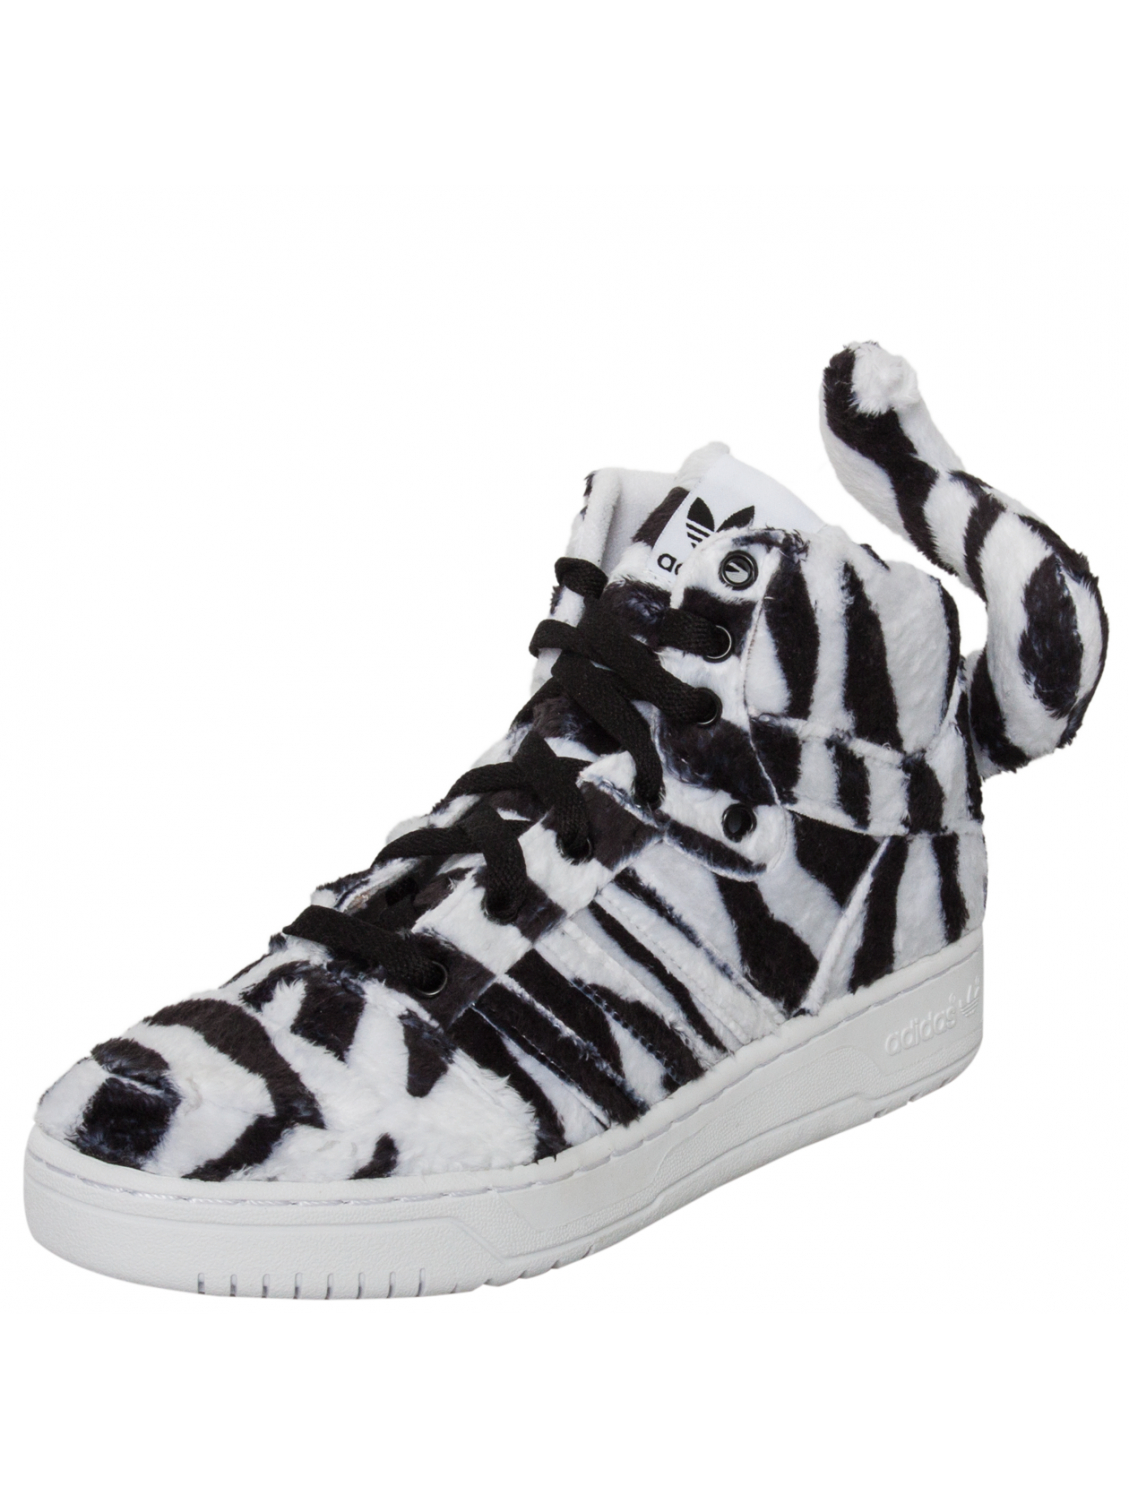 for adidas zebra high top sneakers black